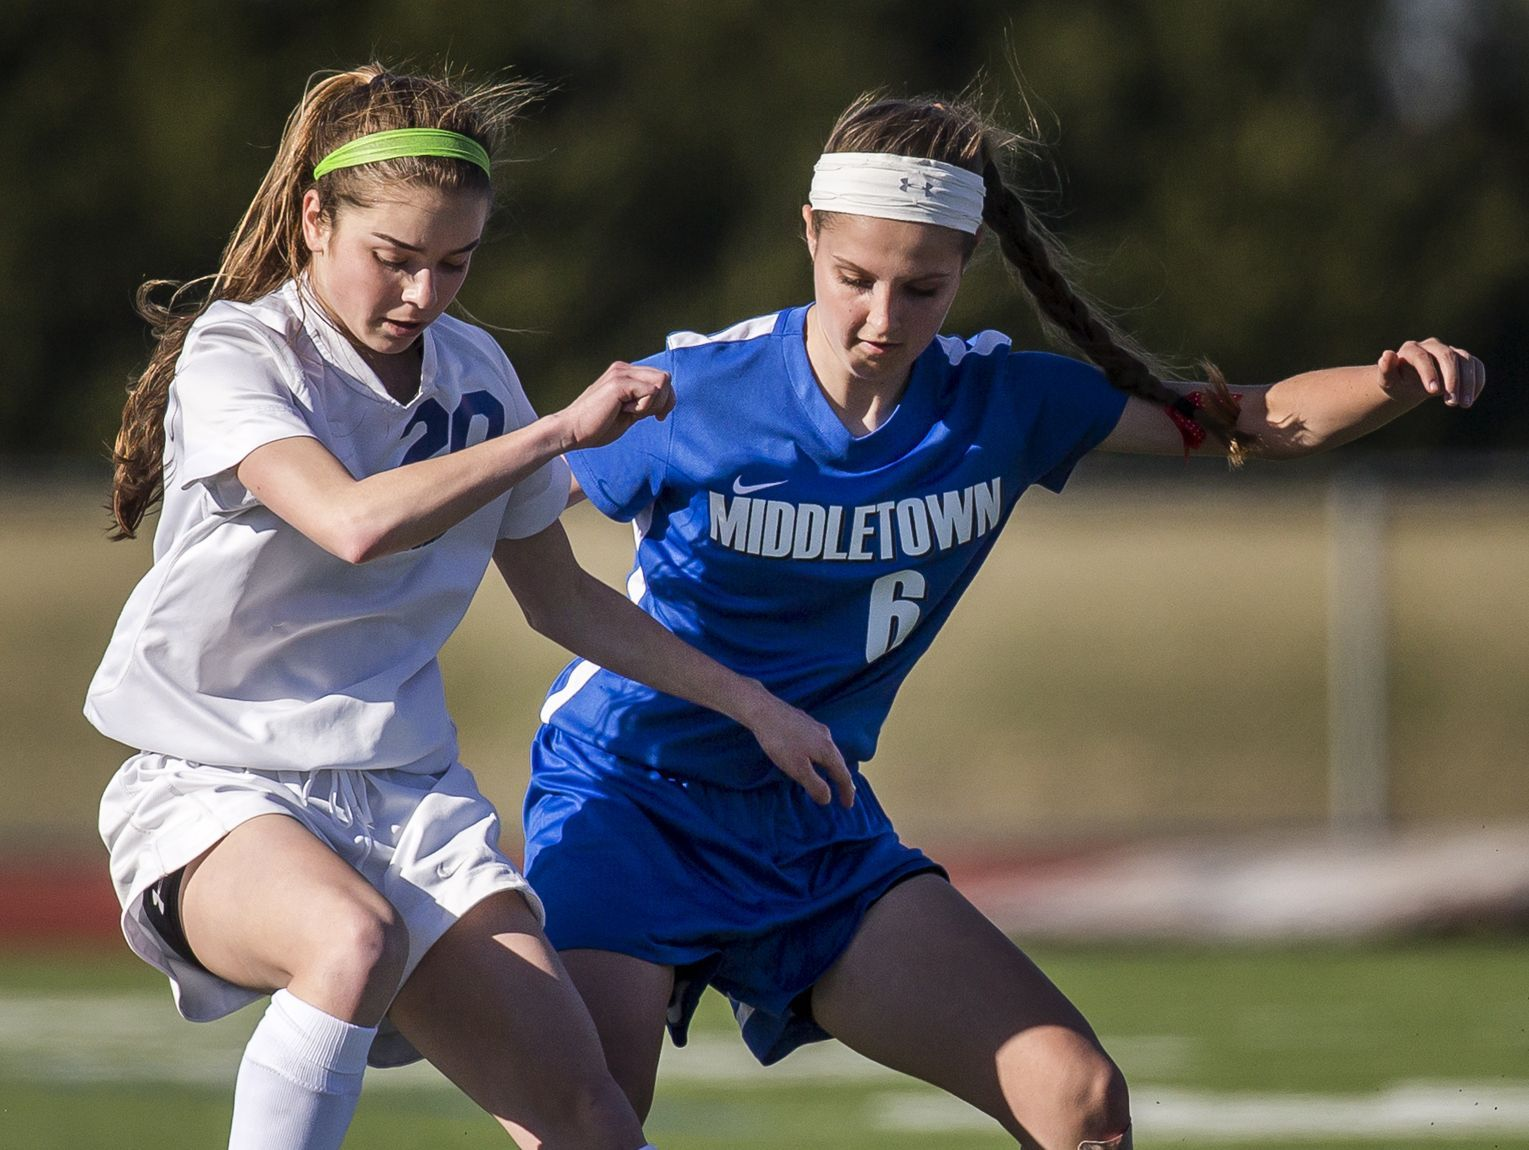 St. Georges' Sarah Lintz (left) and Middletown's Hayley Rohrer (right) fight for the ball in the second half of Middletown's 4-0 win over St. Georges at St. Georges Technical High School in Middletown on Wednesday afternoon.